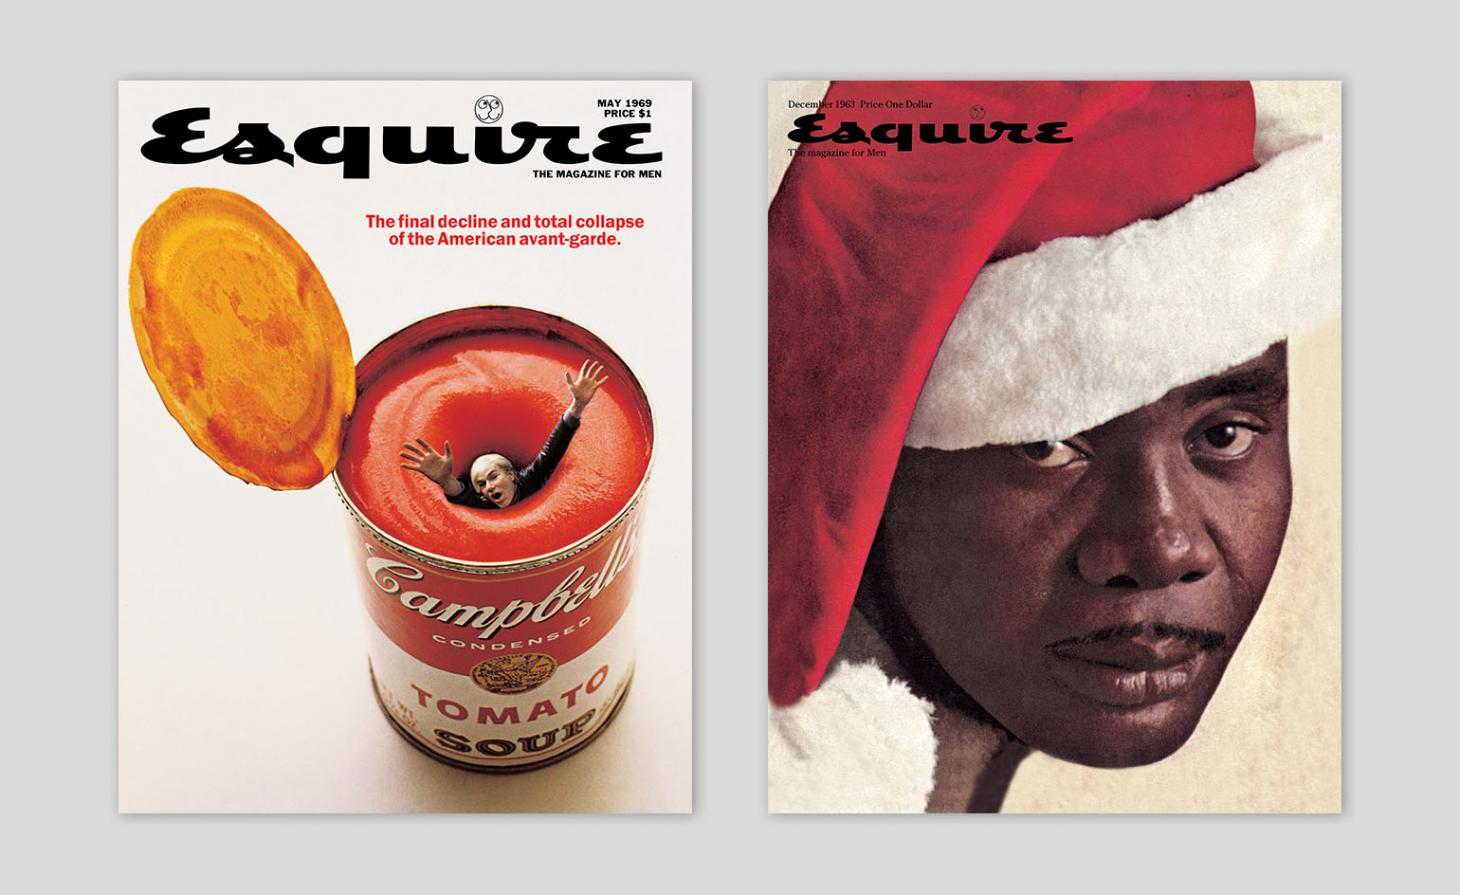 Revolutionary Esquire magazine covers